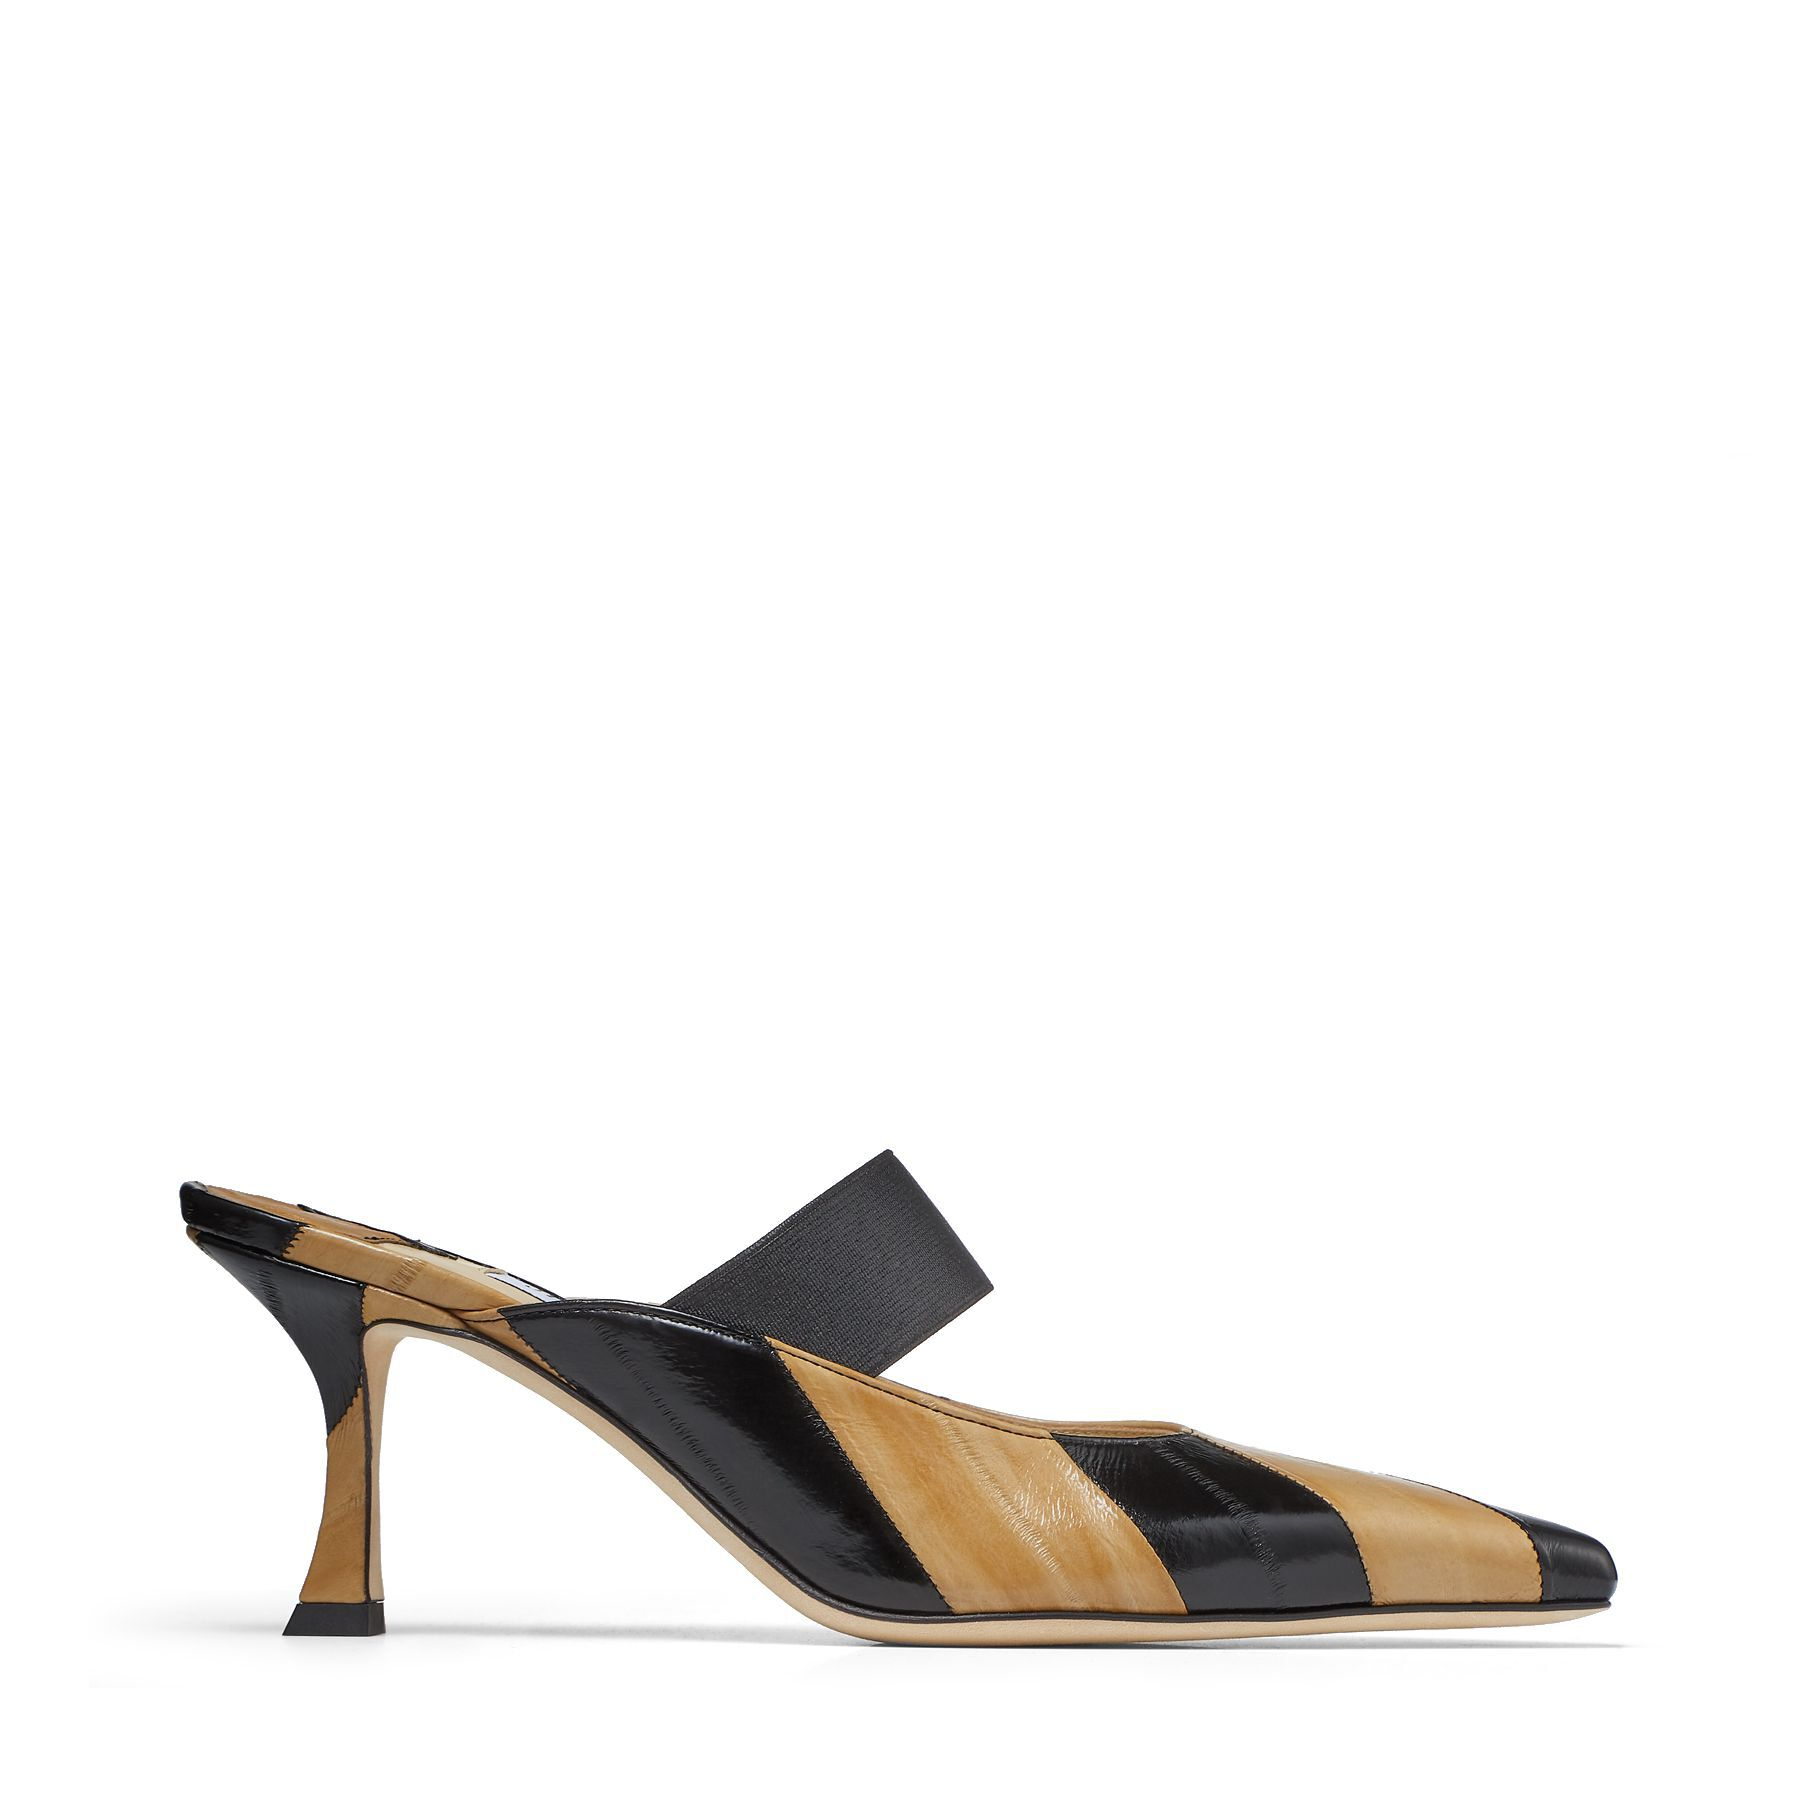 SAFFI 70 - Black and Cognac Striped Eel Leather Mules with Elasticated Strap